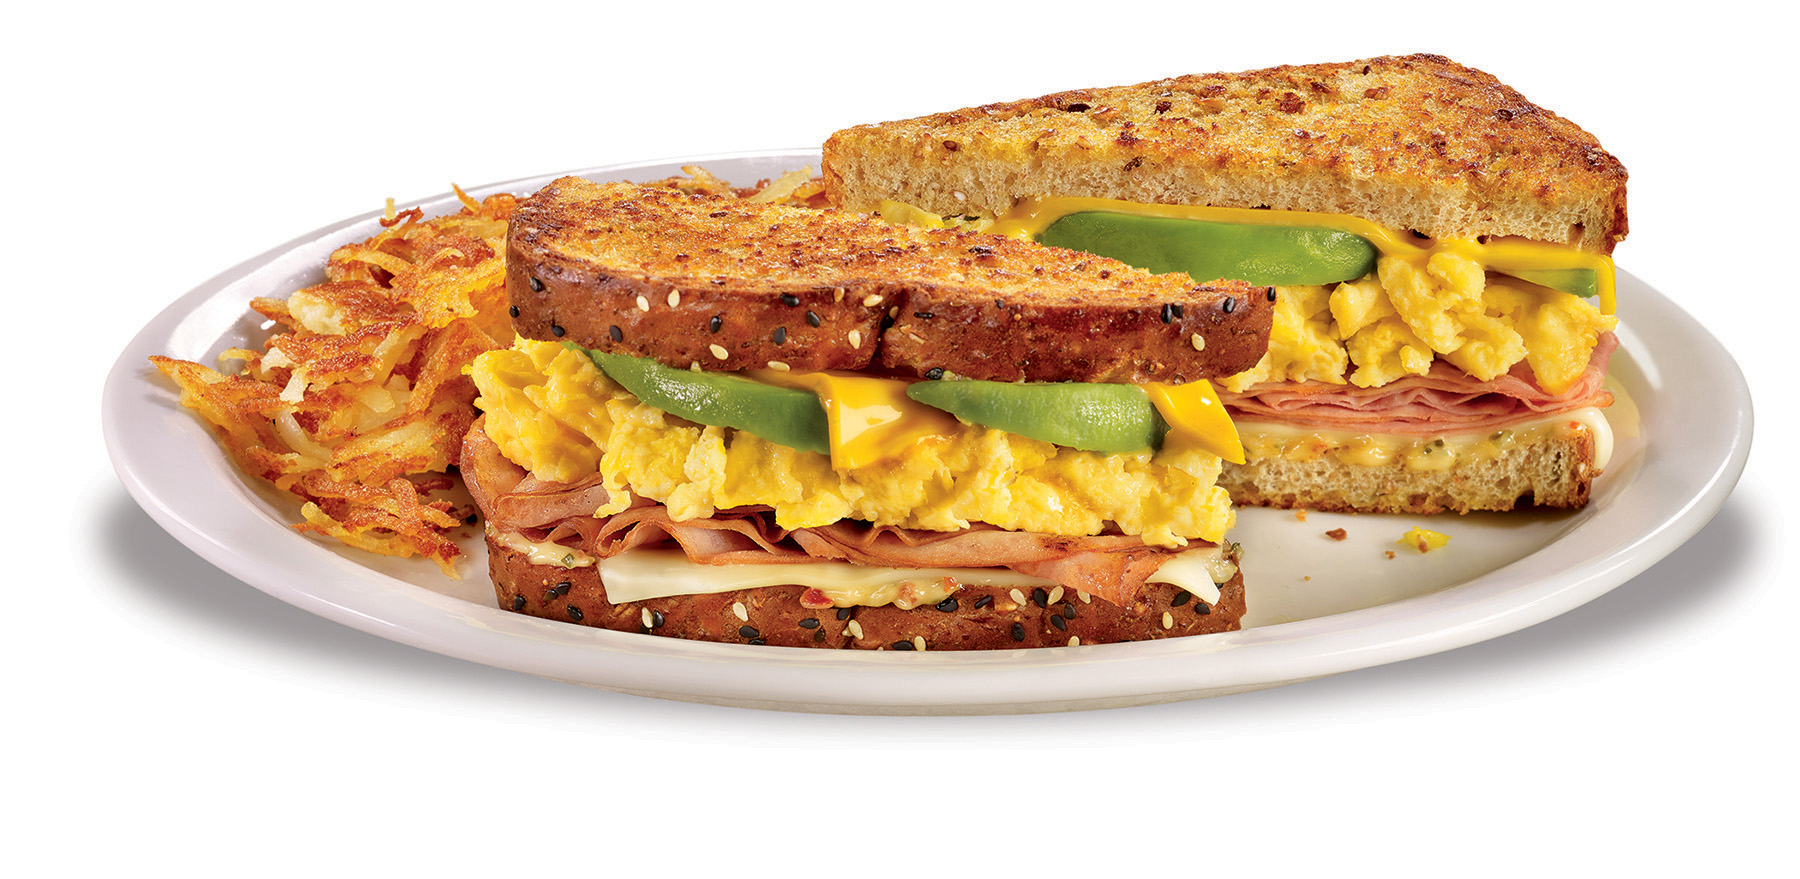 This celebrated sandwich has been given a fresh, new look with ham and scrambled egg topped with Swiss and American cheeses, sliced fresh avocado and sun-dried tomato mayo on grilled seven-grain bread